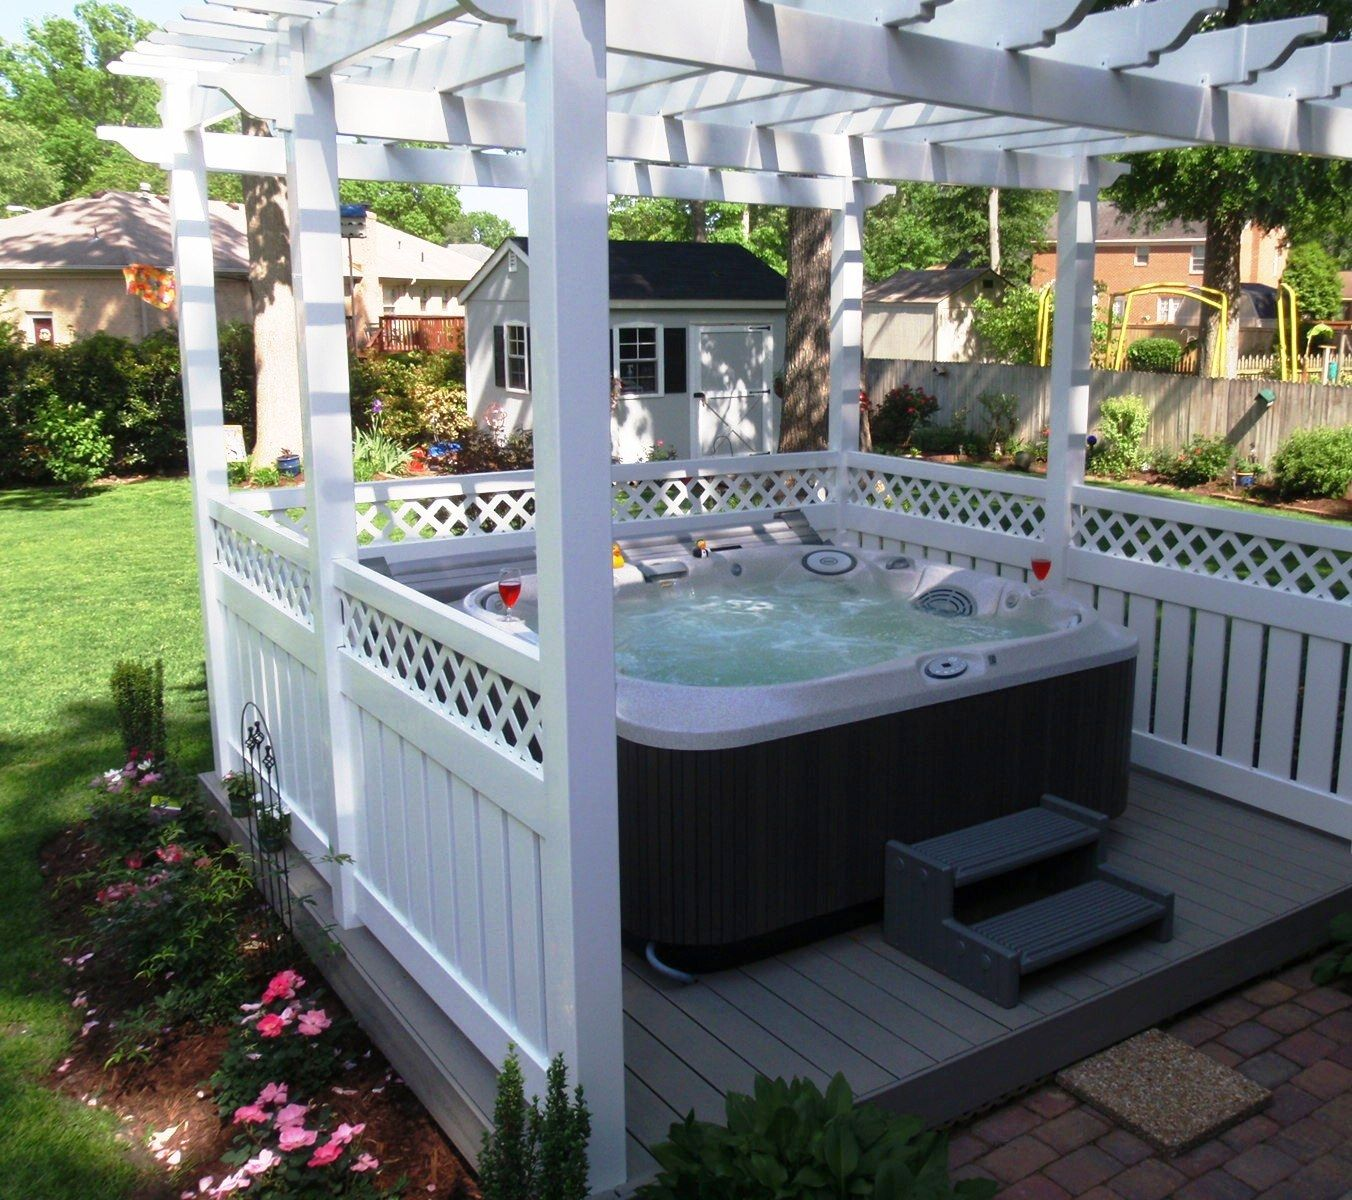 8 ways to place your original outdoor jacuzzi backyards hot tub with8 ways to place your original outdoor jacuzzi backyards hot tub with outdoor jacuzzi how to choose the outdoor jacuzzi